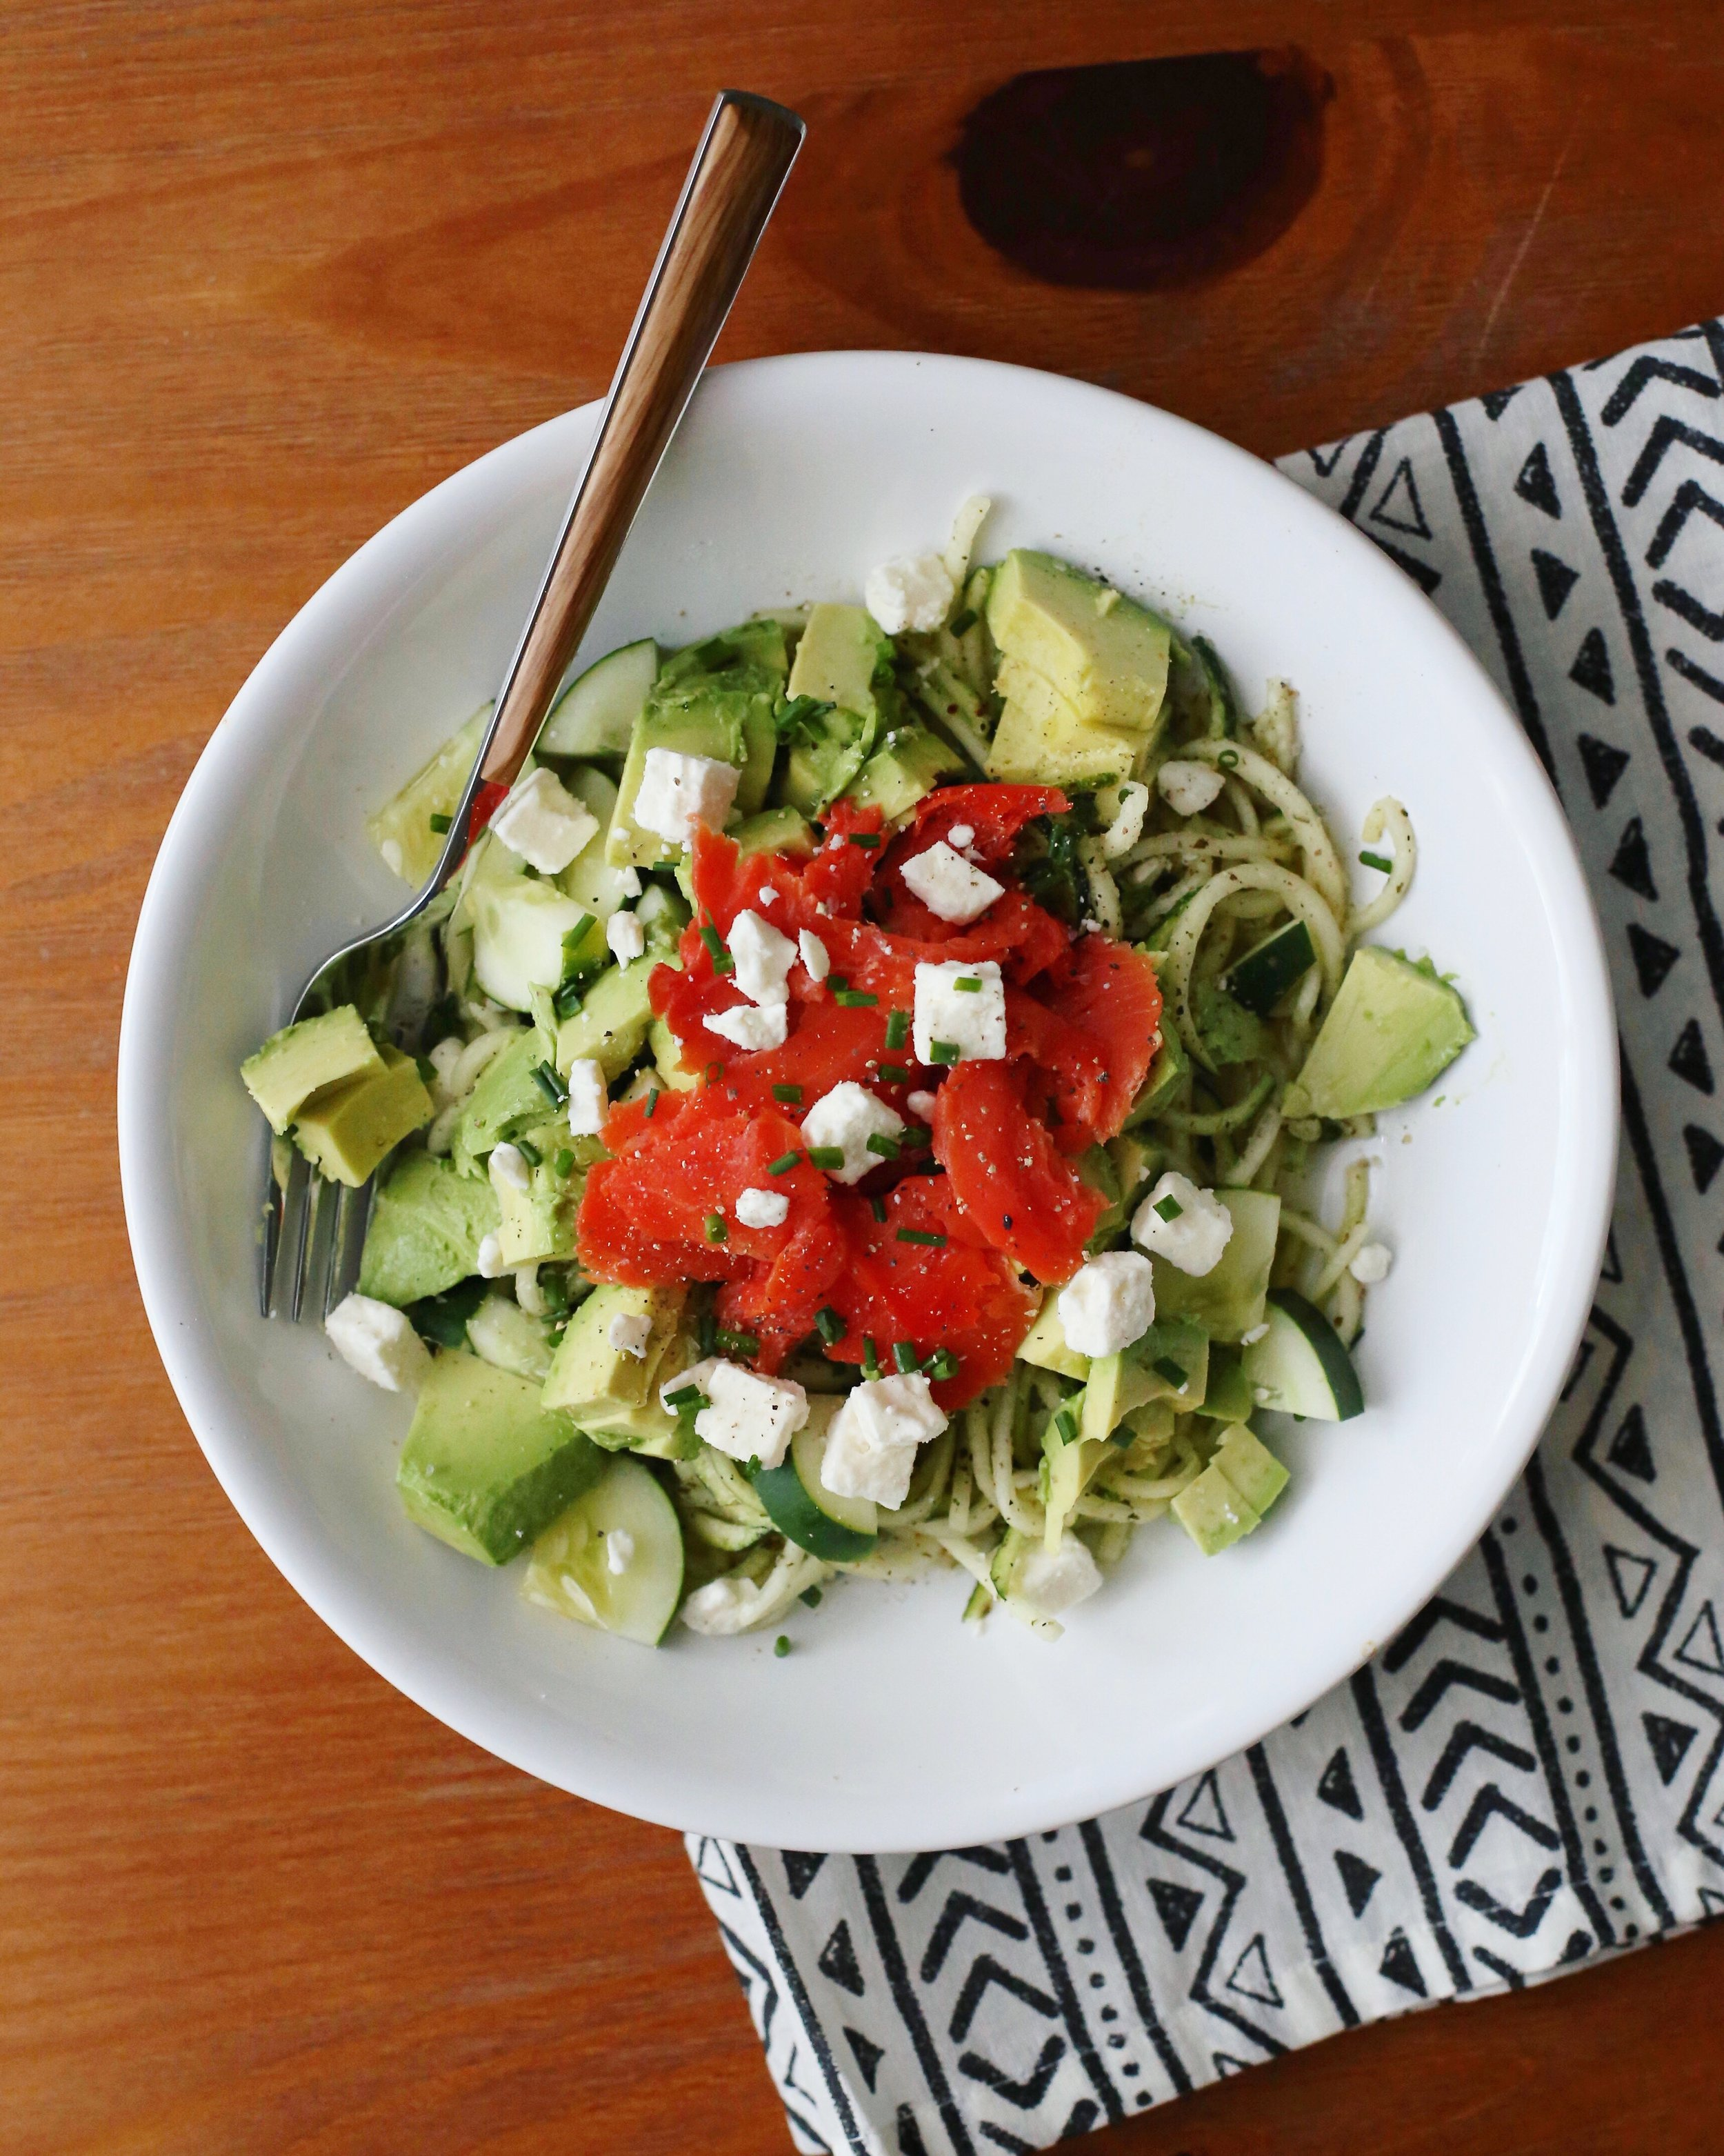 Summer salad with cucumber, avocado, zucchini, feta cheese, and smoked salmon drizzled with a light lemon and olive oil dressing.